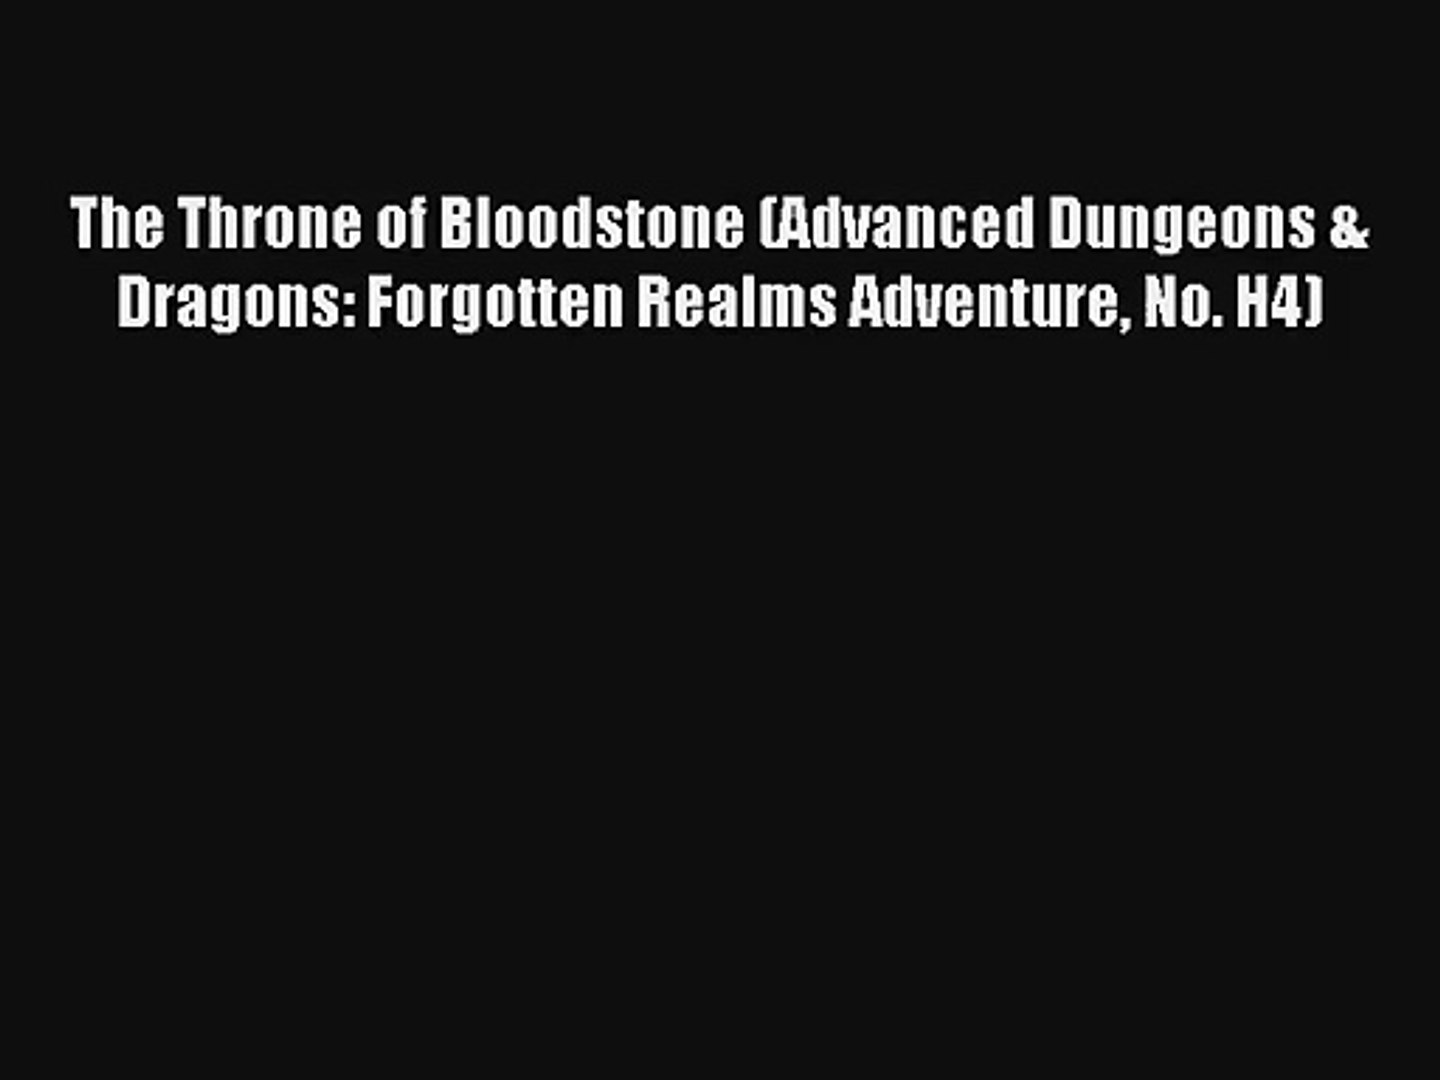 The Throne of Bloodstone (Advanced Dungeons & Dragons: Forgotten Realms Adventure No. H4) [PDF]